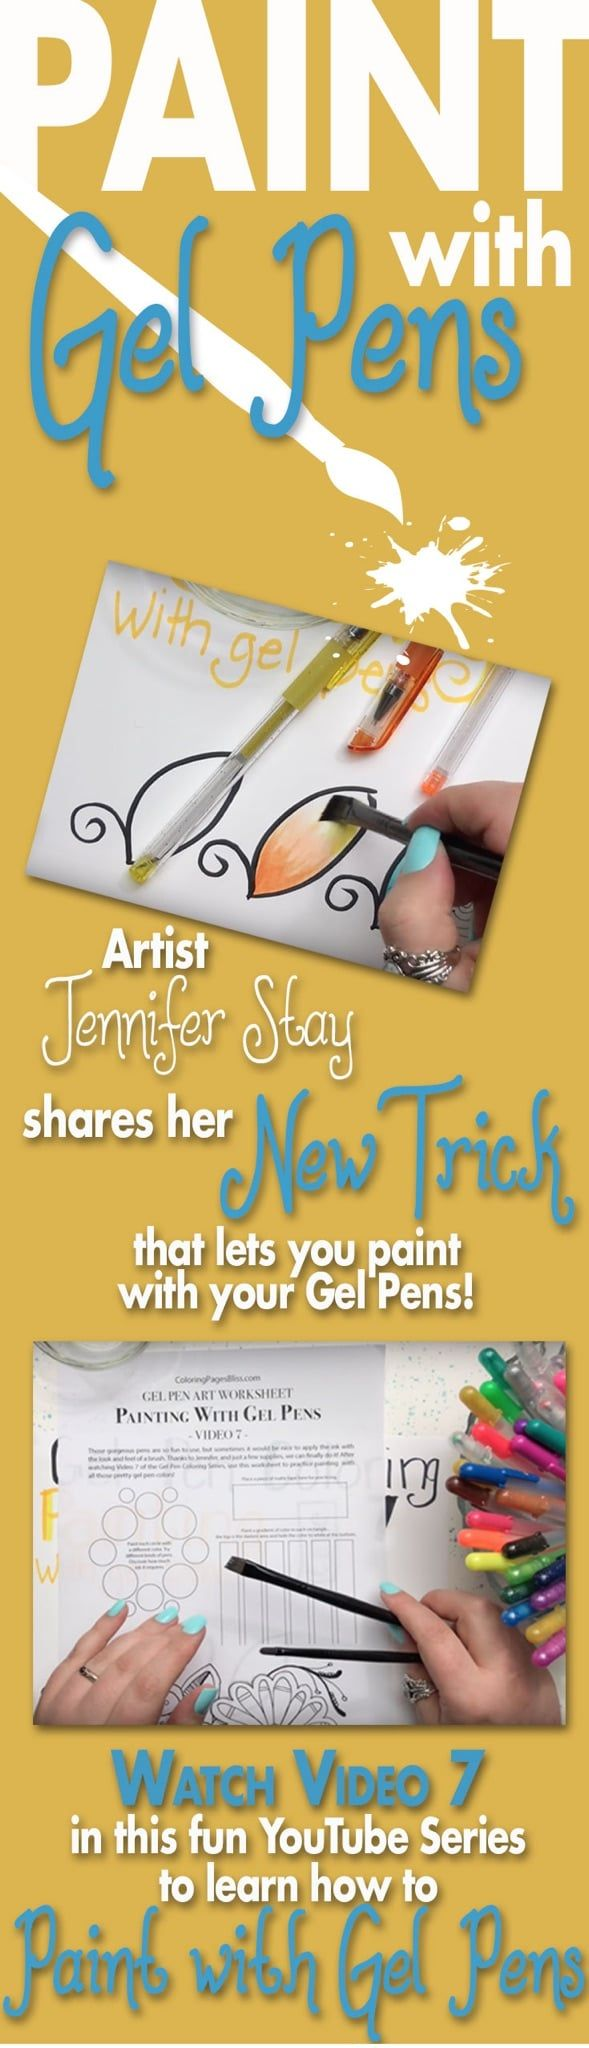 How to Paint with Gel Pens. Did you know that you can use your gel pens to paint? Artist Jennifer Stay can show you her technique to use the beautiful ink as paint. This is a free coloring tutorial that will inspire you to use your paint brushes and gel pens in new ways you hadn't considered before!